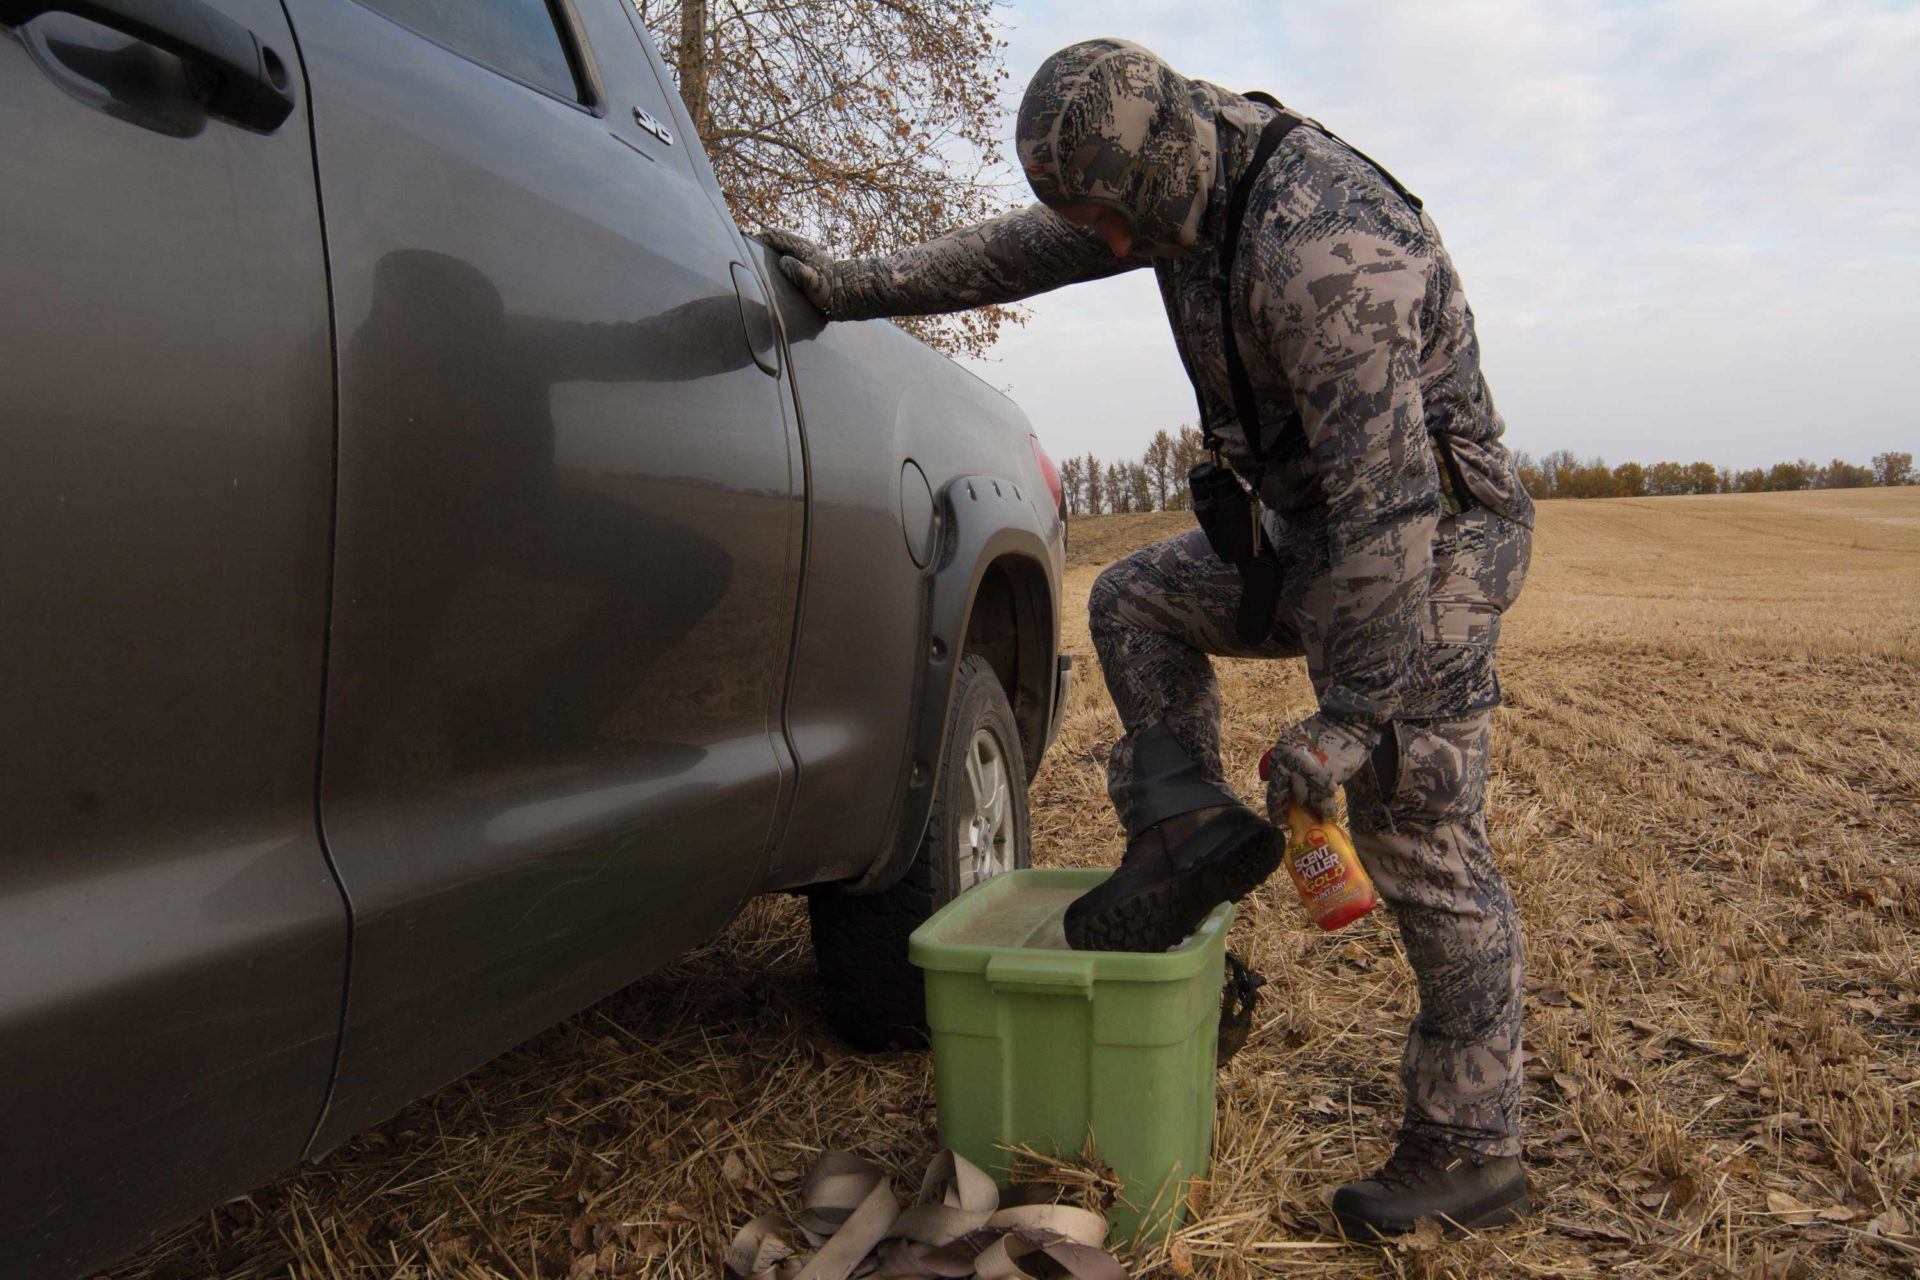 It's important to keep you and your decoys free from unnatural scents.